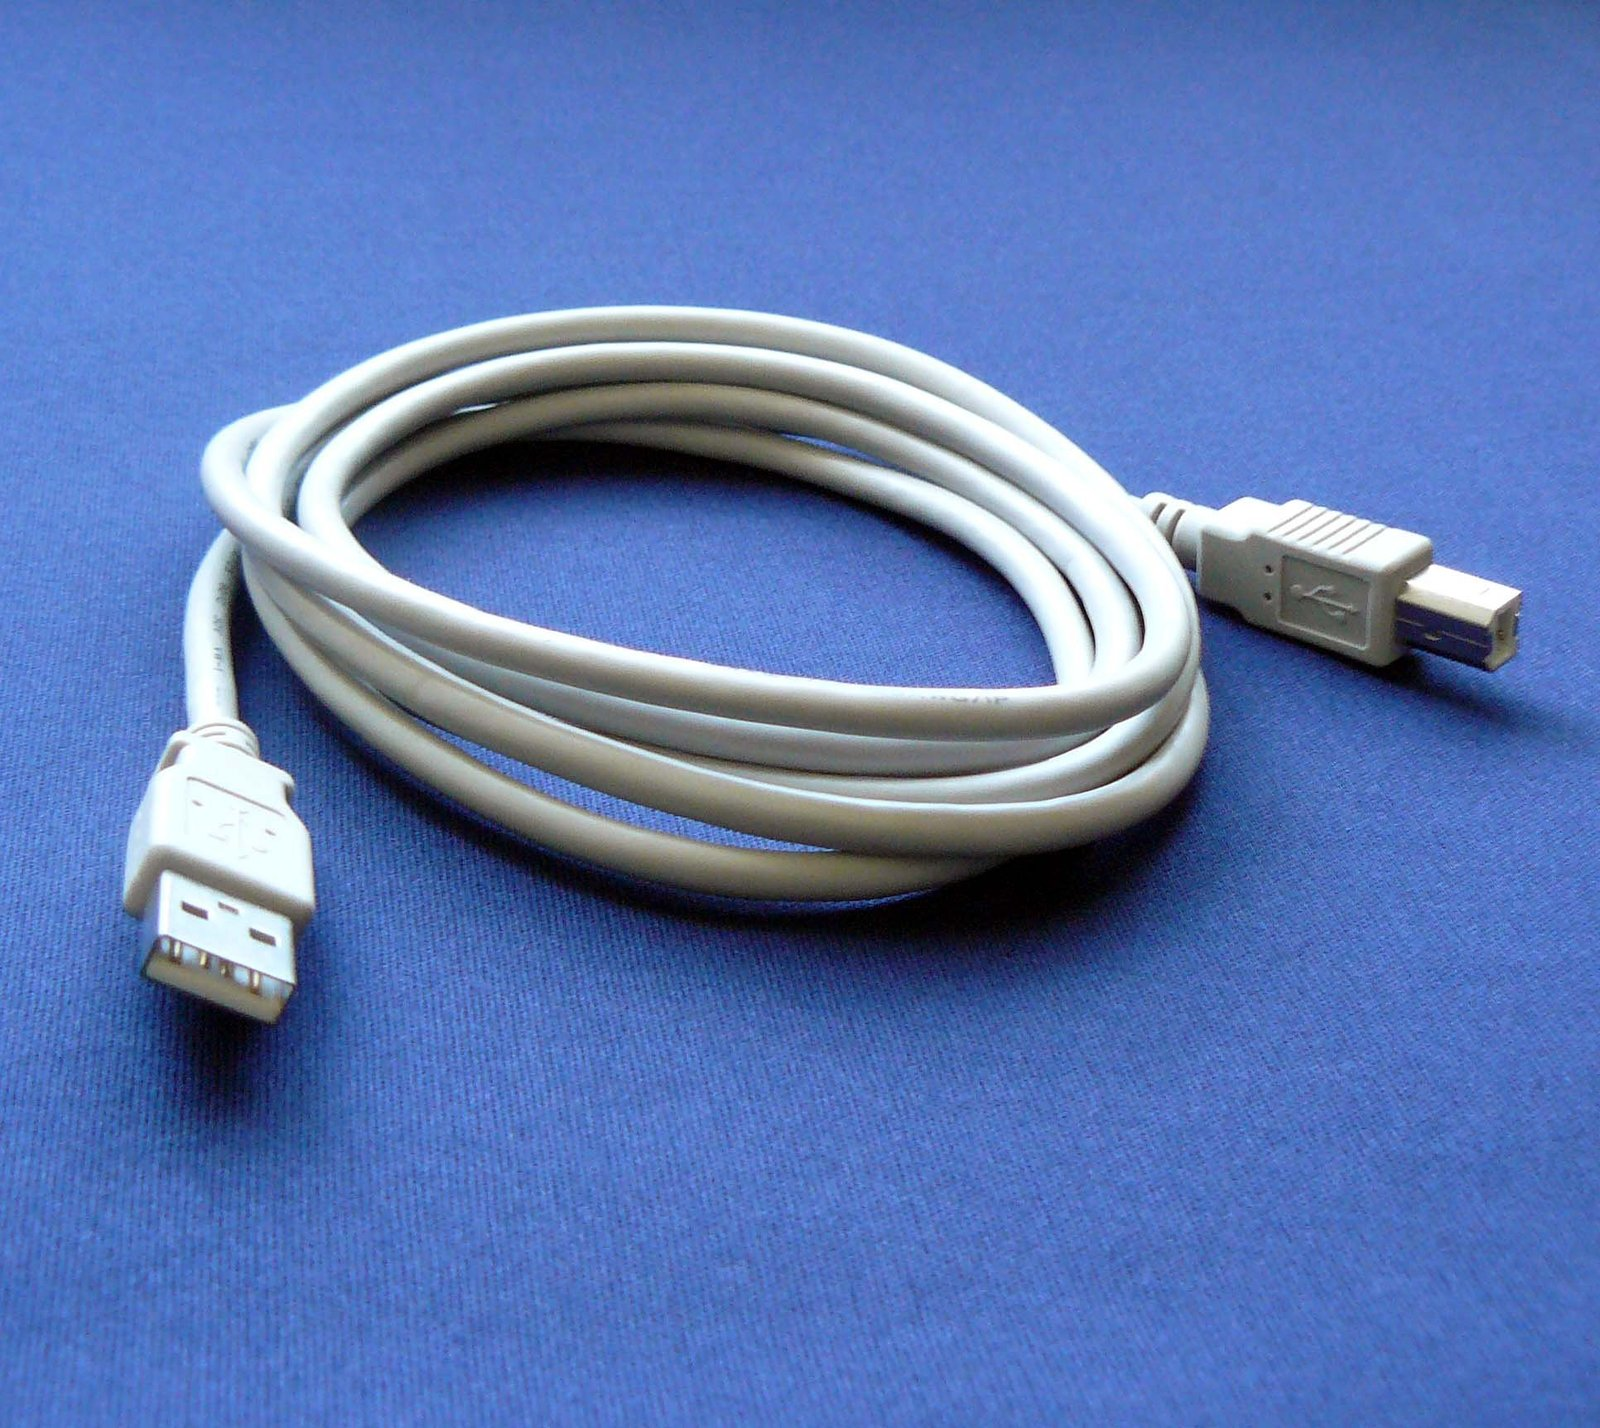 Primary image for HP LaserJet CM2320fxi Printer Compatible USB 2.0 Cable Cord for PC, Notebook,...